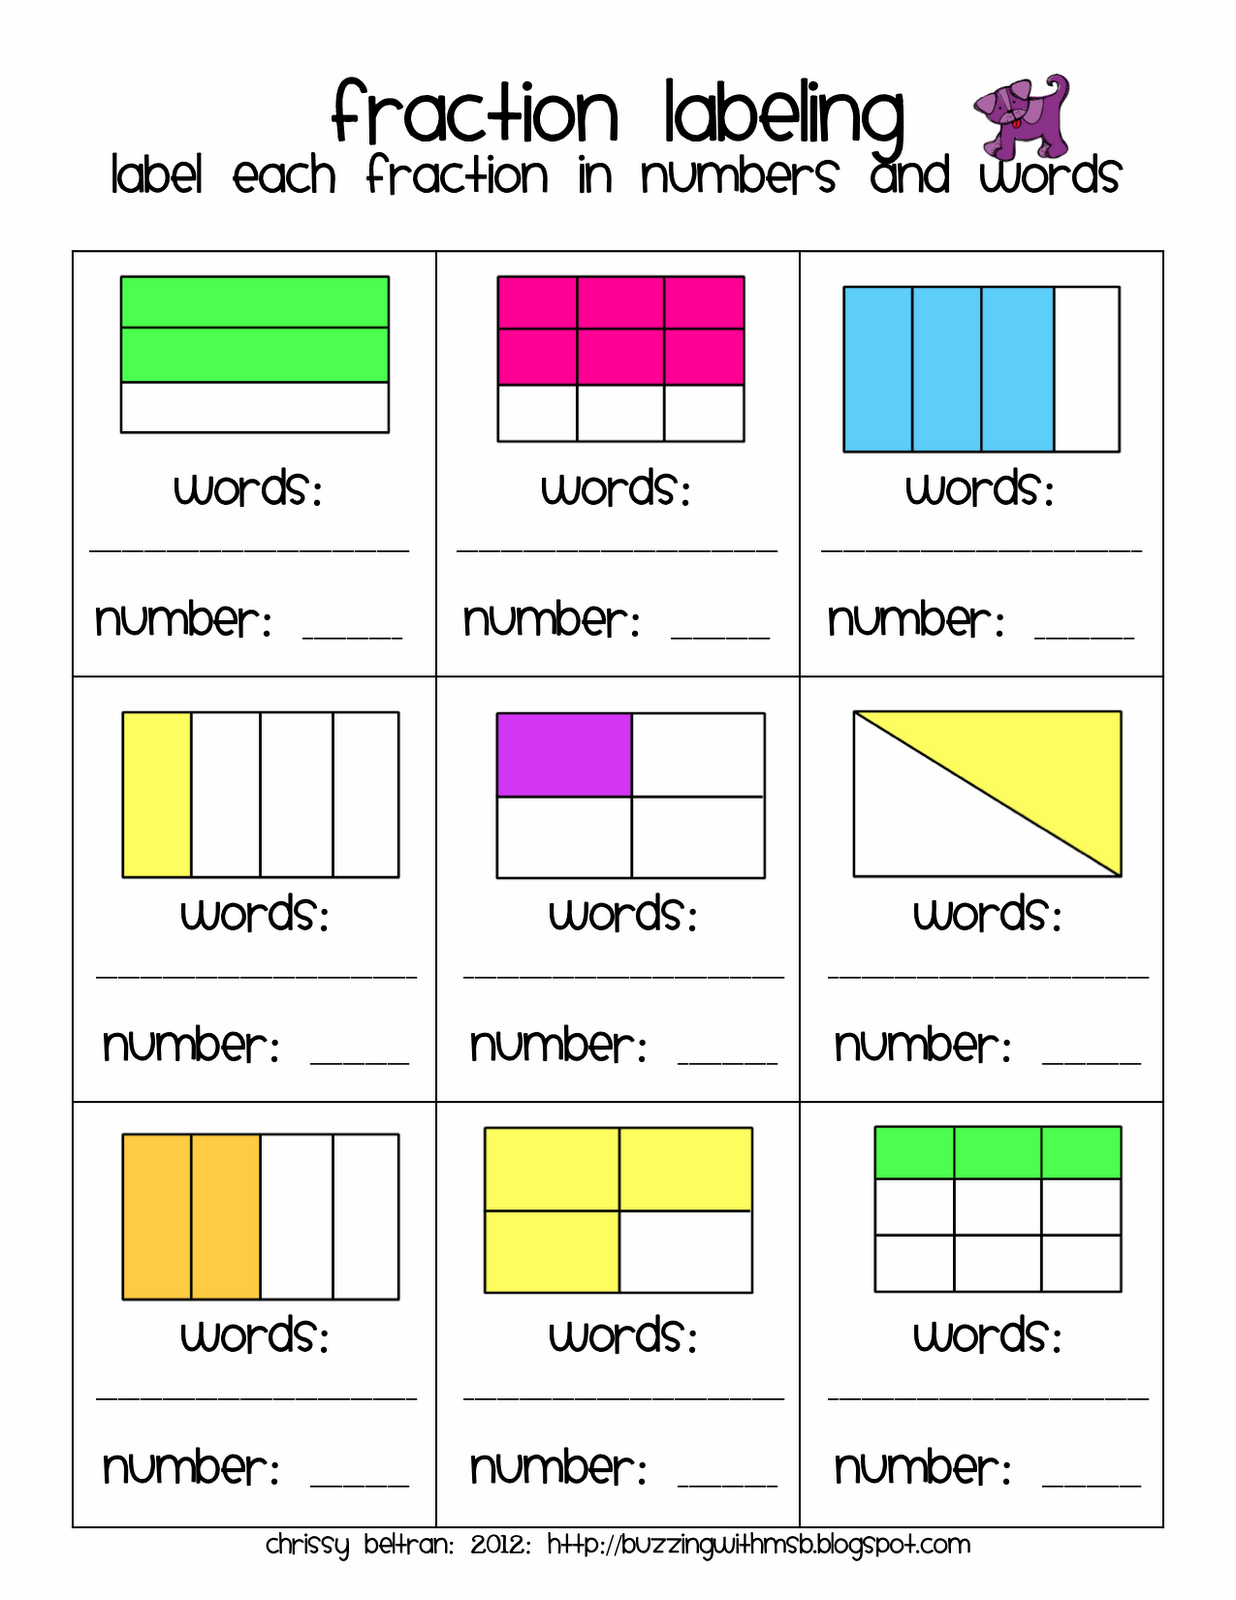 Dun Dun Dunnnn Fractions Freebie With Images